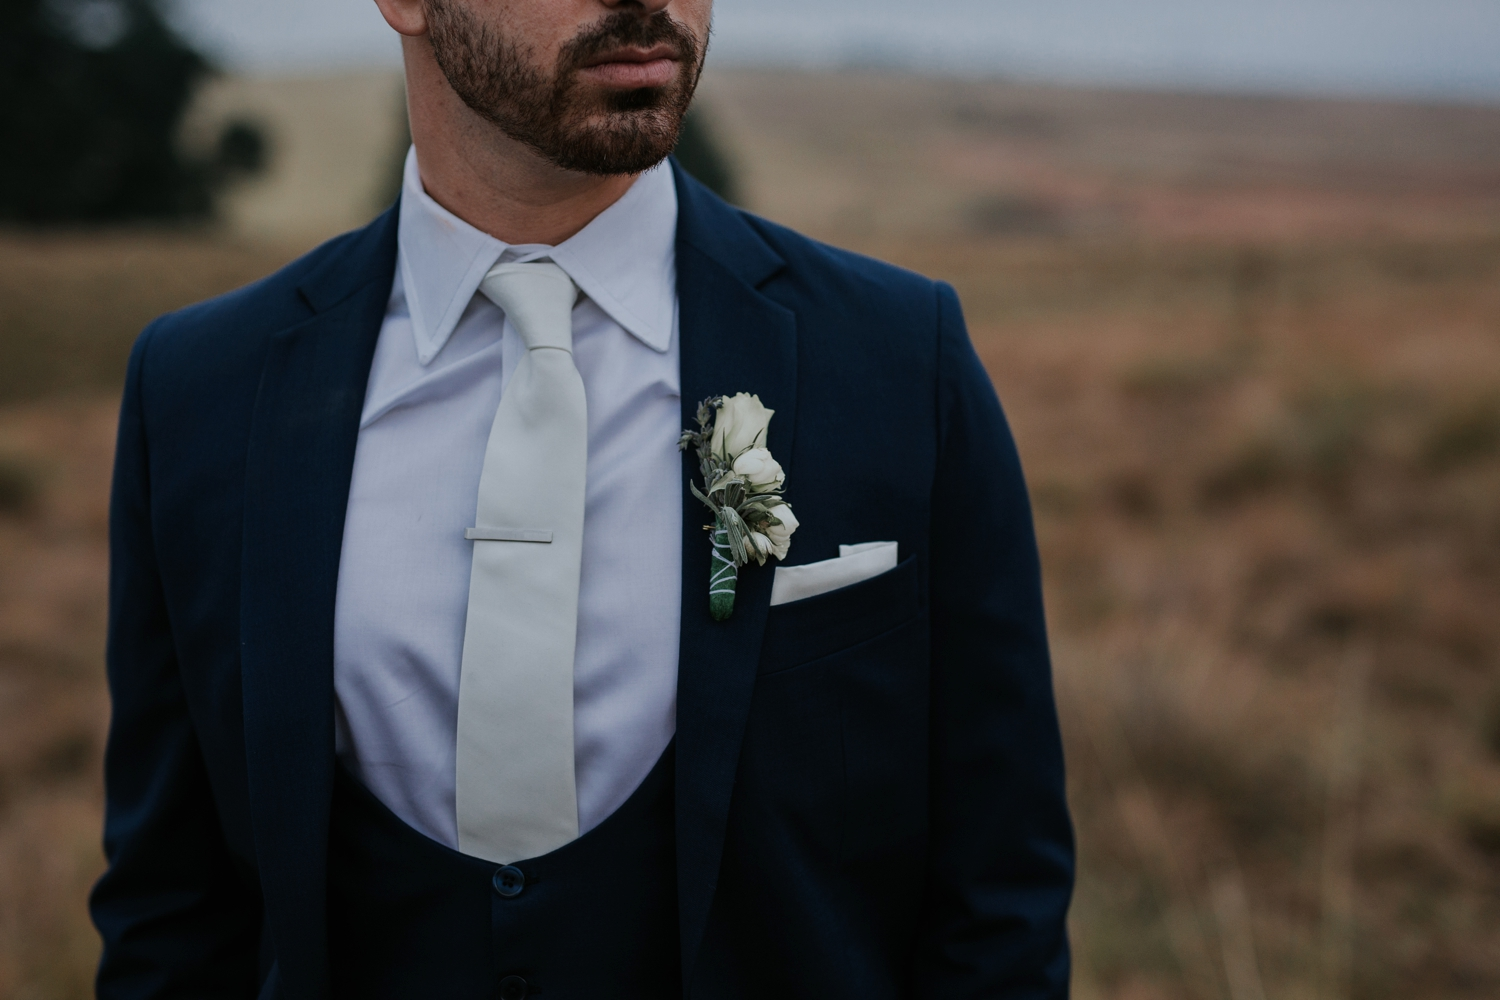 Groom wars simple white rose lapel and trendy suit in wedding portrait photography session by candid Vancouver wedding photographer